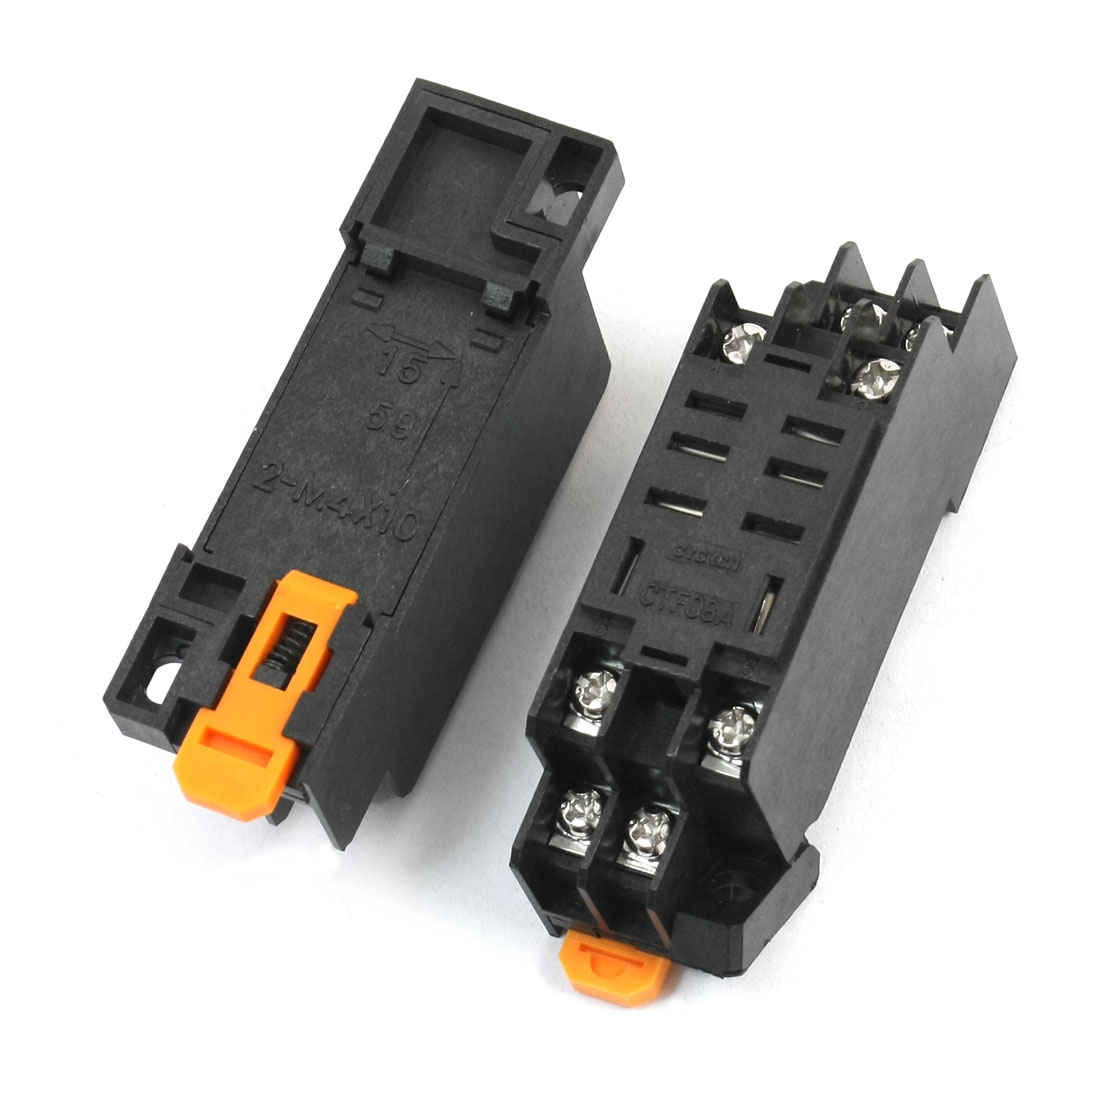 2Pcs 35mm DIN Rail Mounting 8 Screw Terminals 8Pin Black Plastic Power Relay Socket Base PTF08A for HH62P LY2NJ